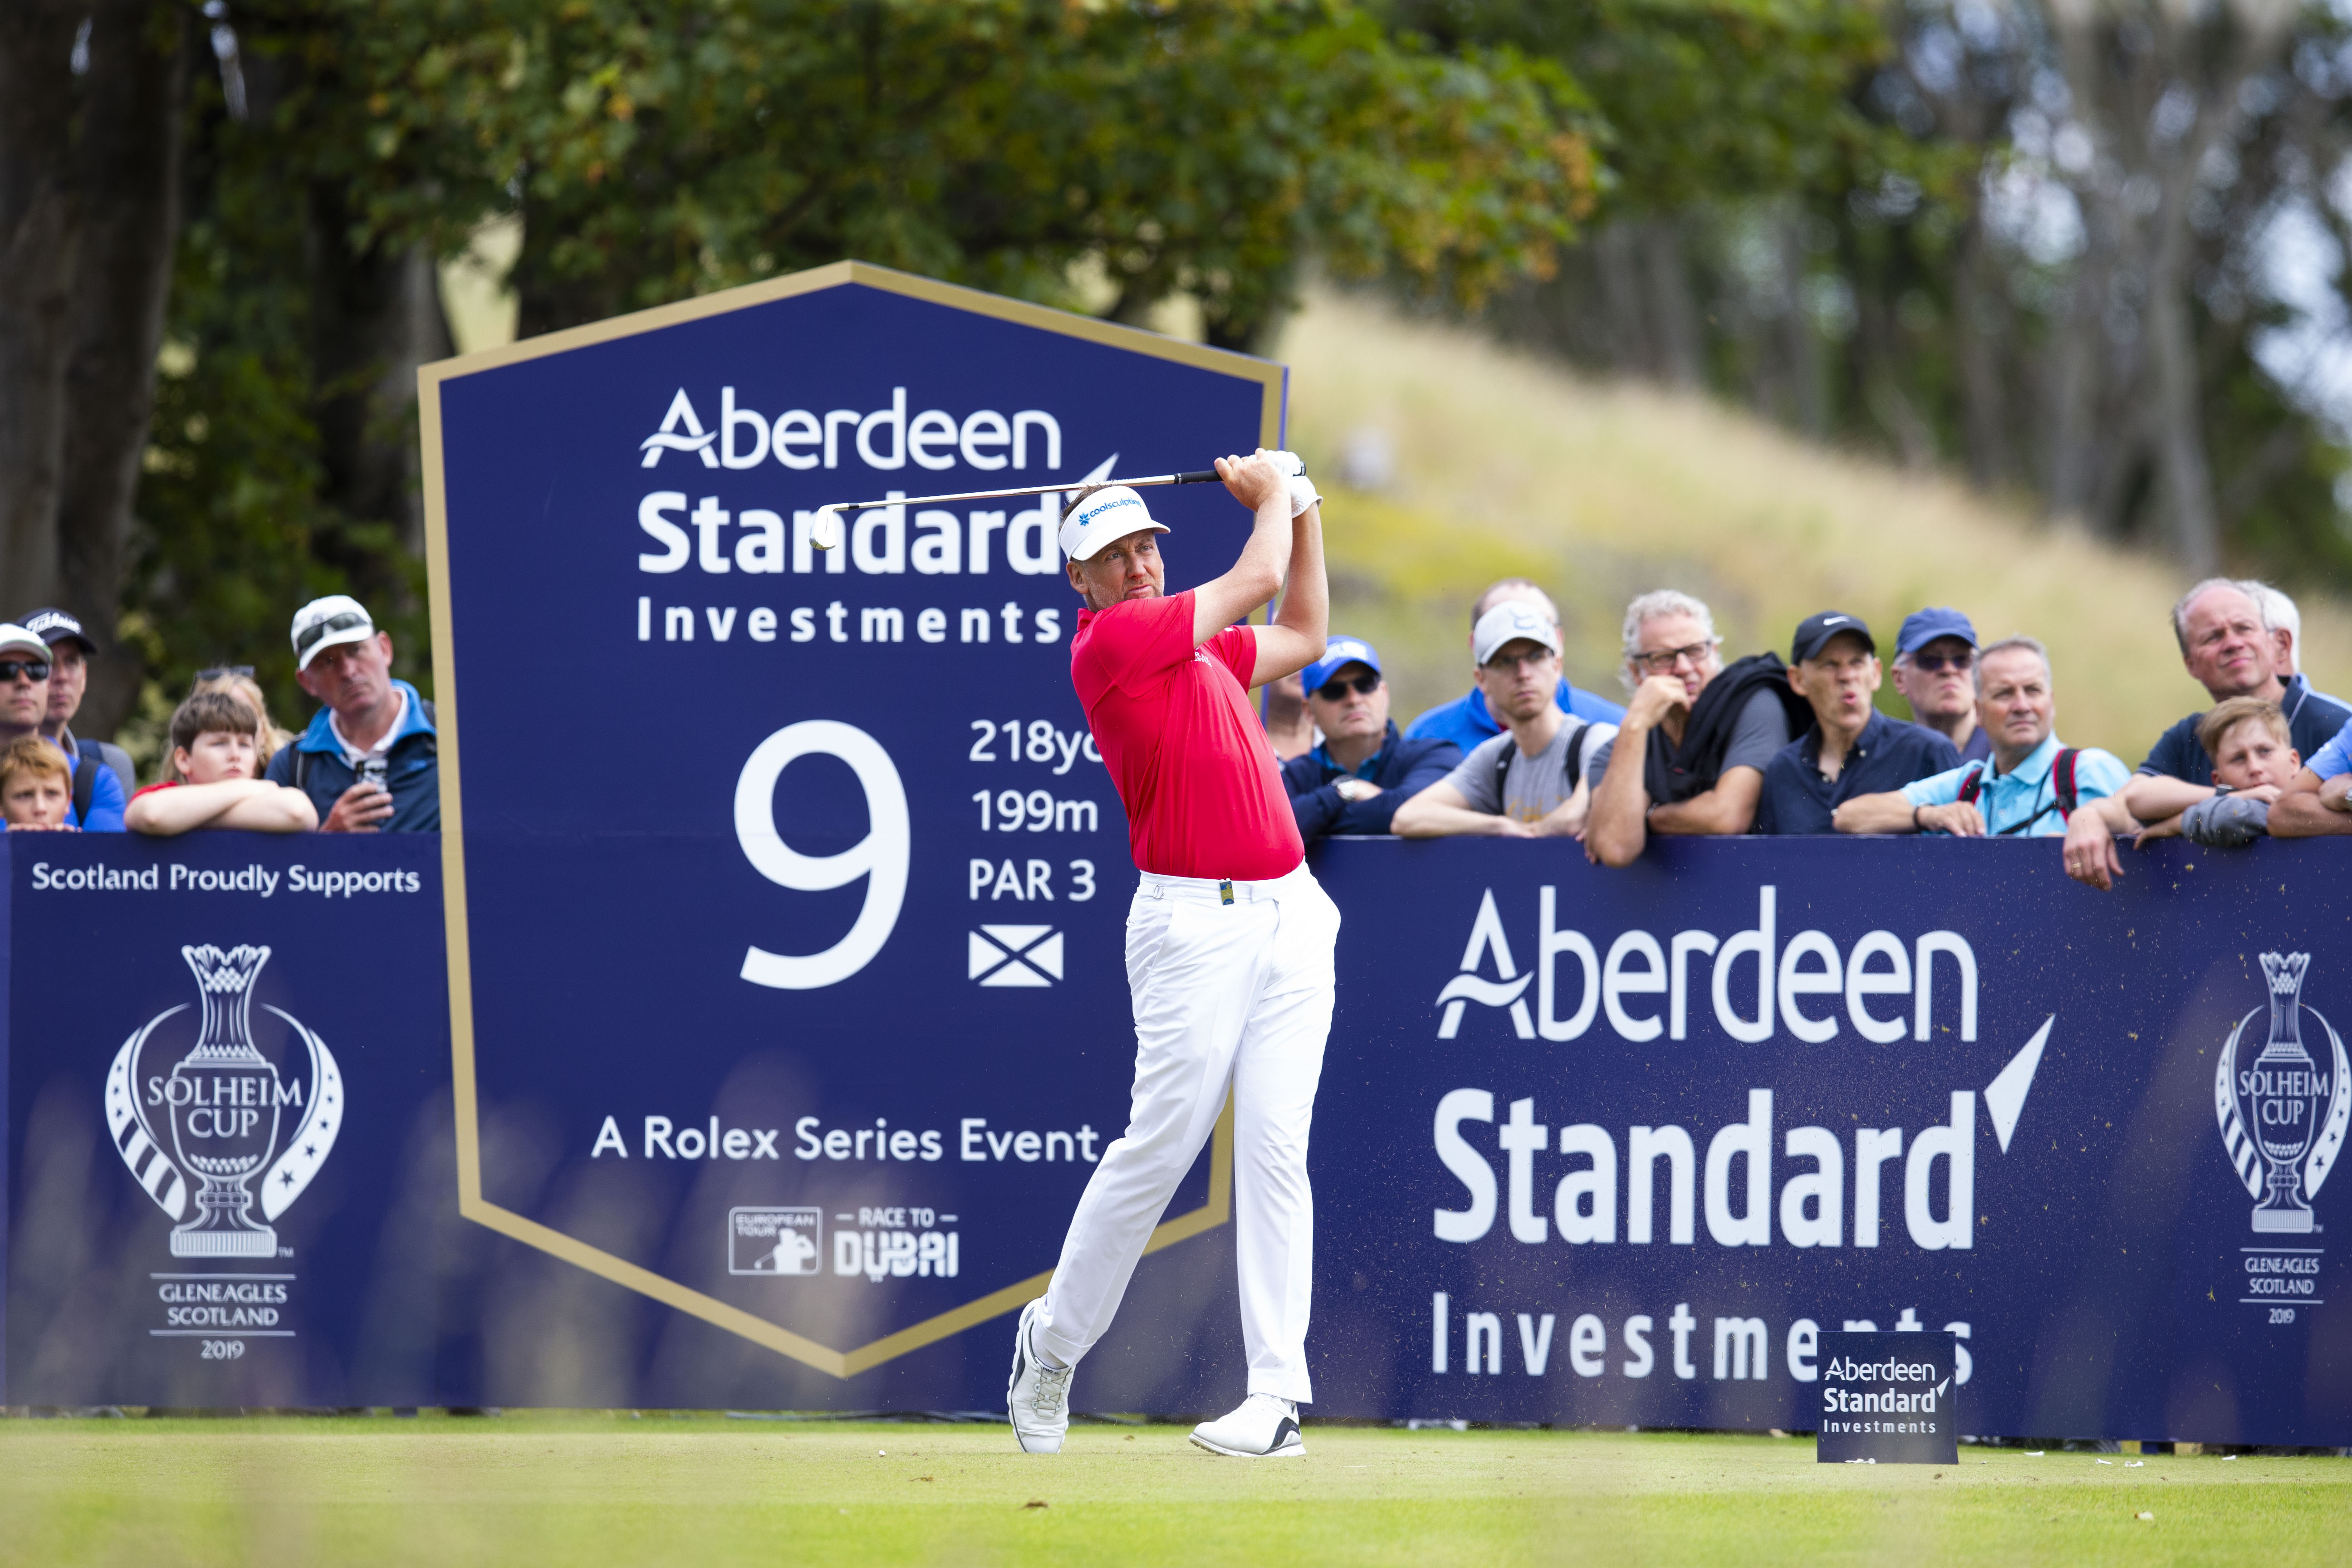 Ian Poulter in action on Day 2 of the Aberdeen Standard Investments Scottish Open.